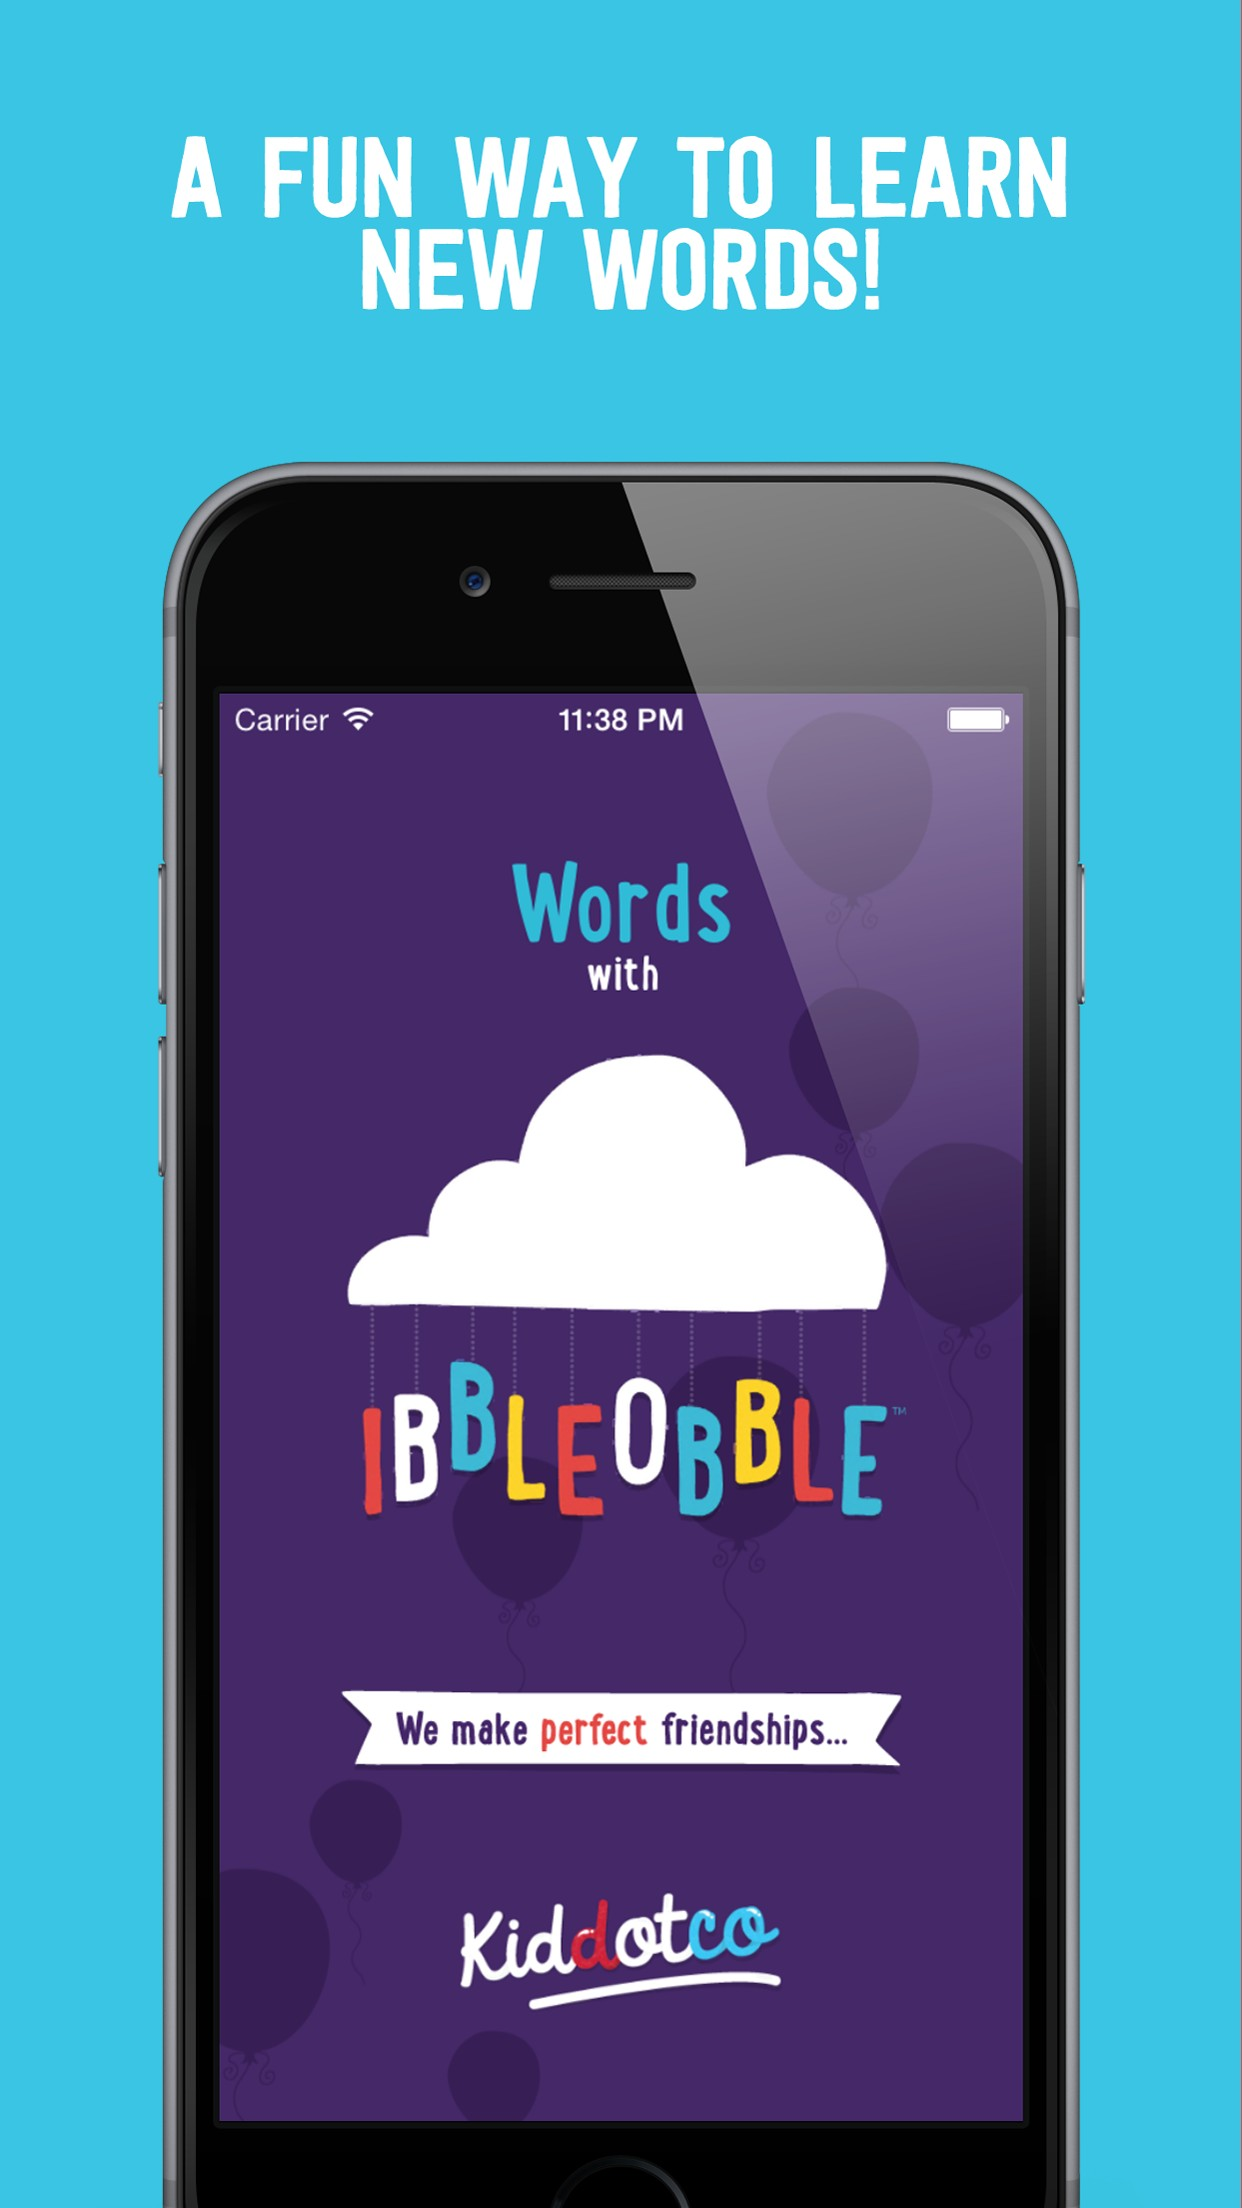 Words with Ibbleobble